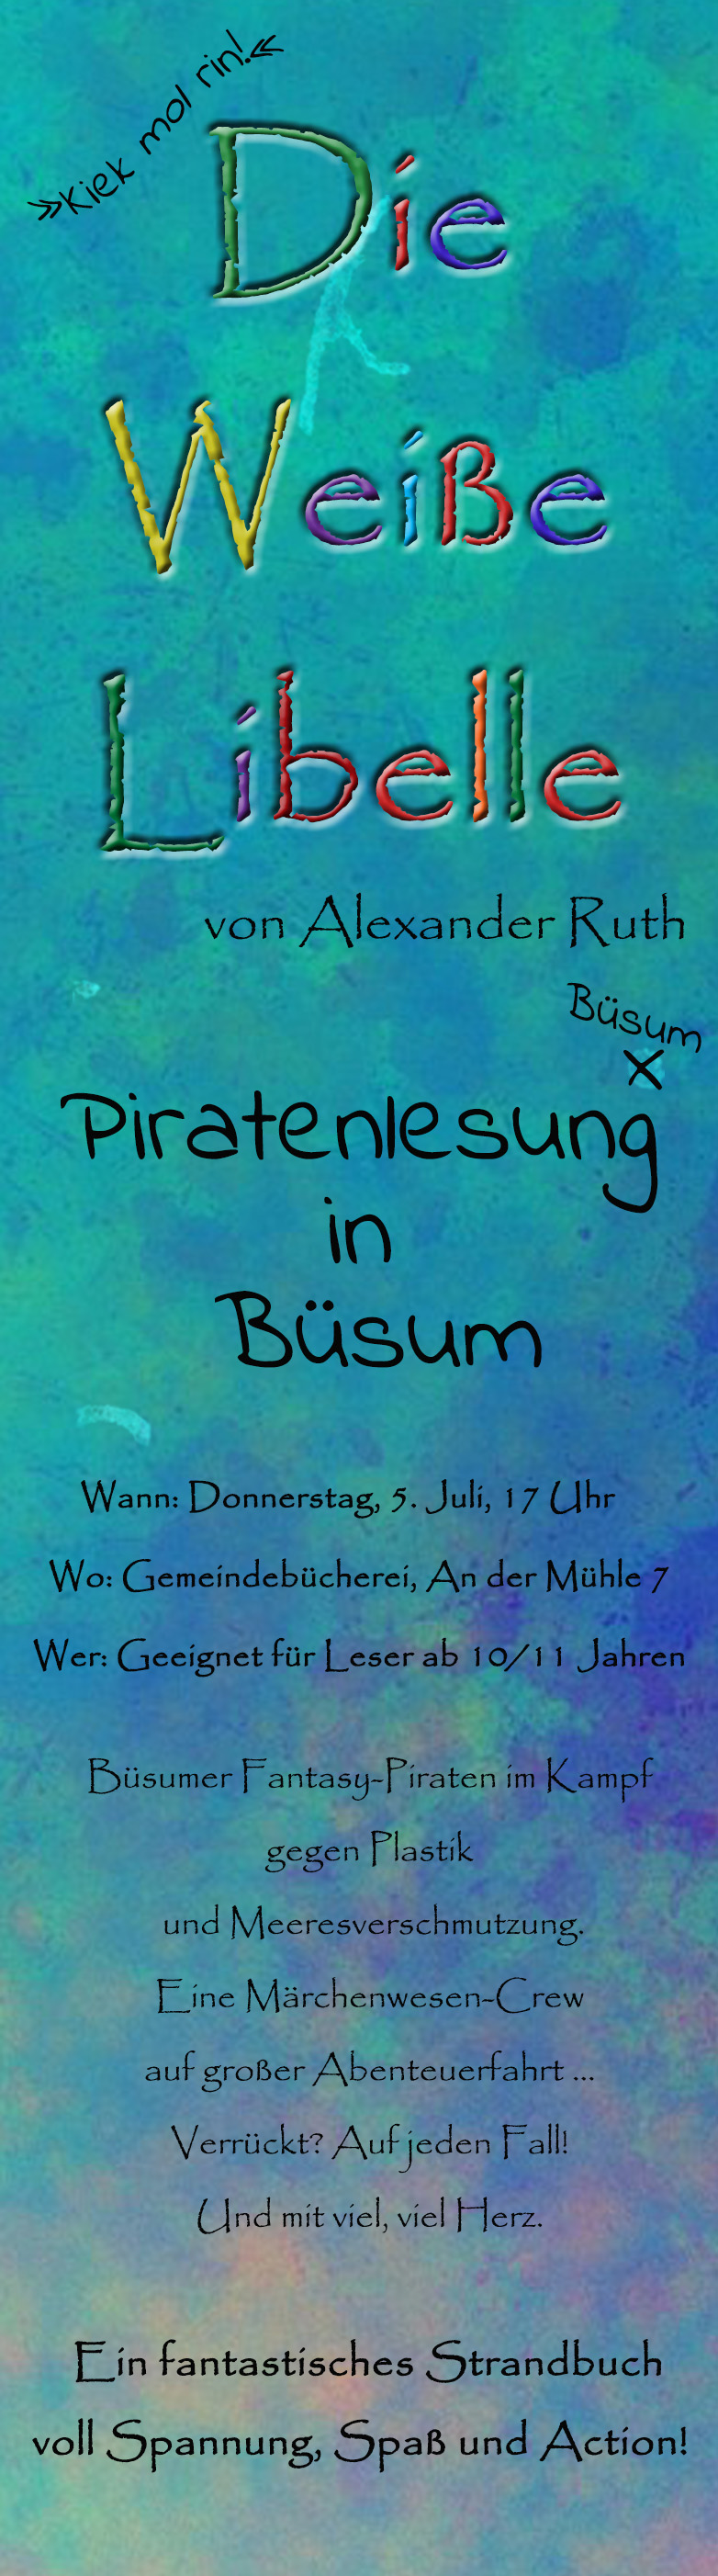 Piratenlesung in Büsum mit Alexander Ruth.